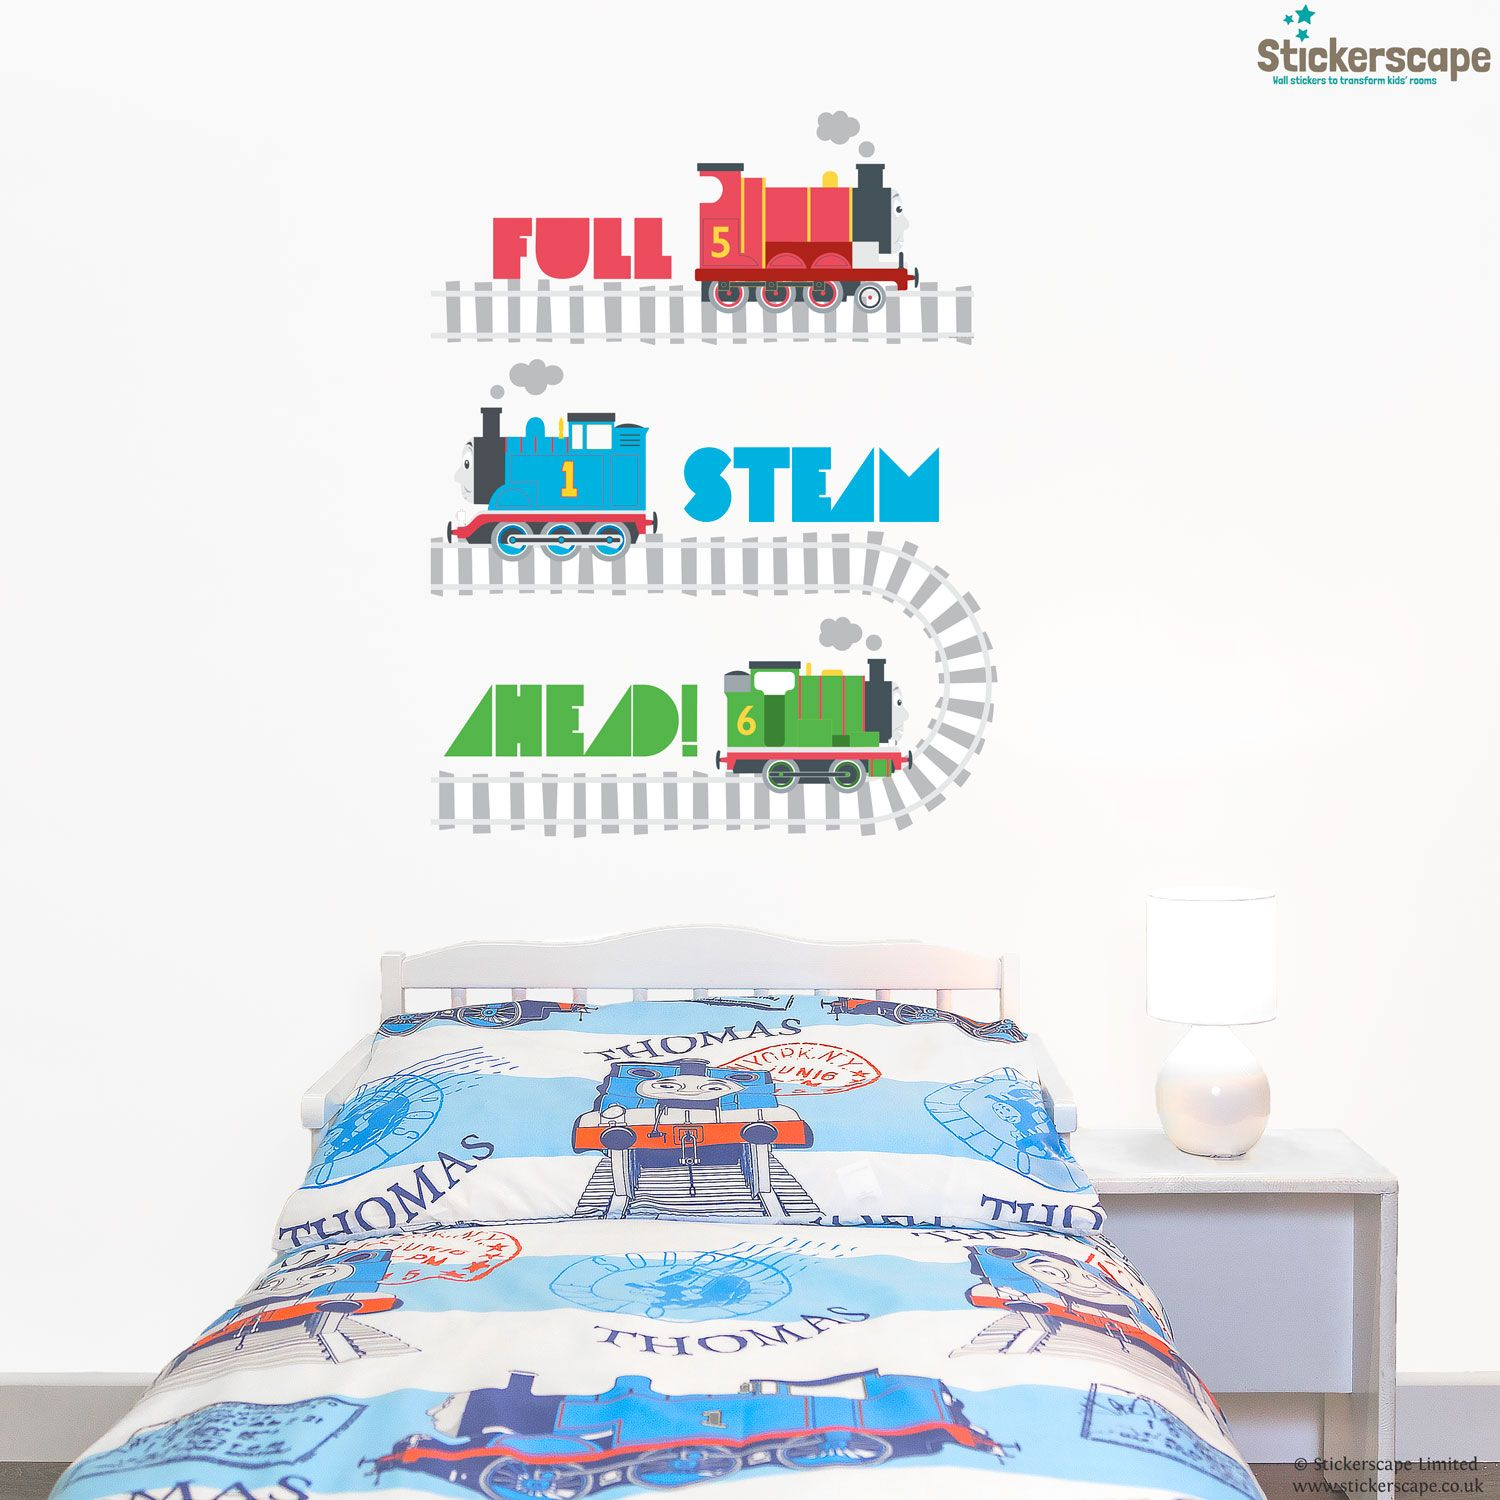 Stickerscapes Official Thomas The Tank Engine Wall Sticker Range Is